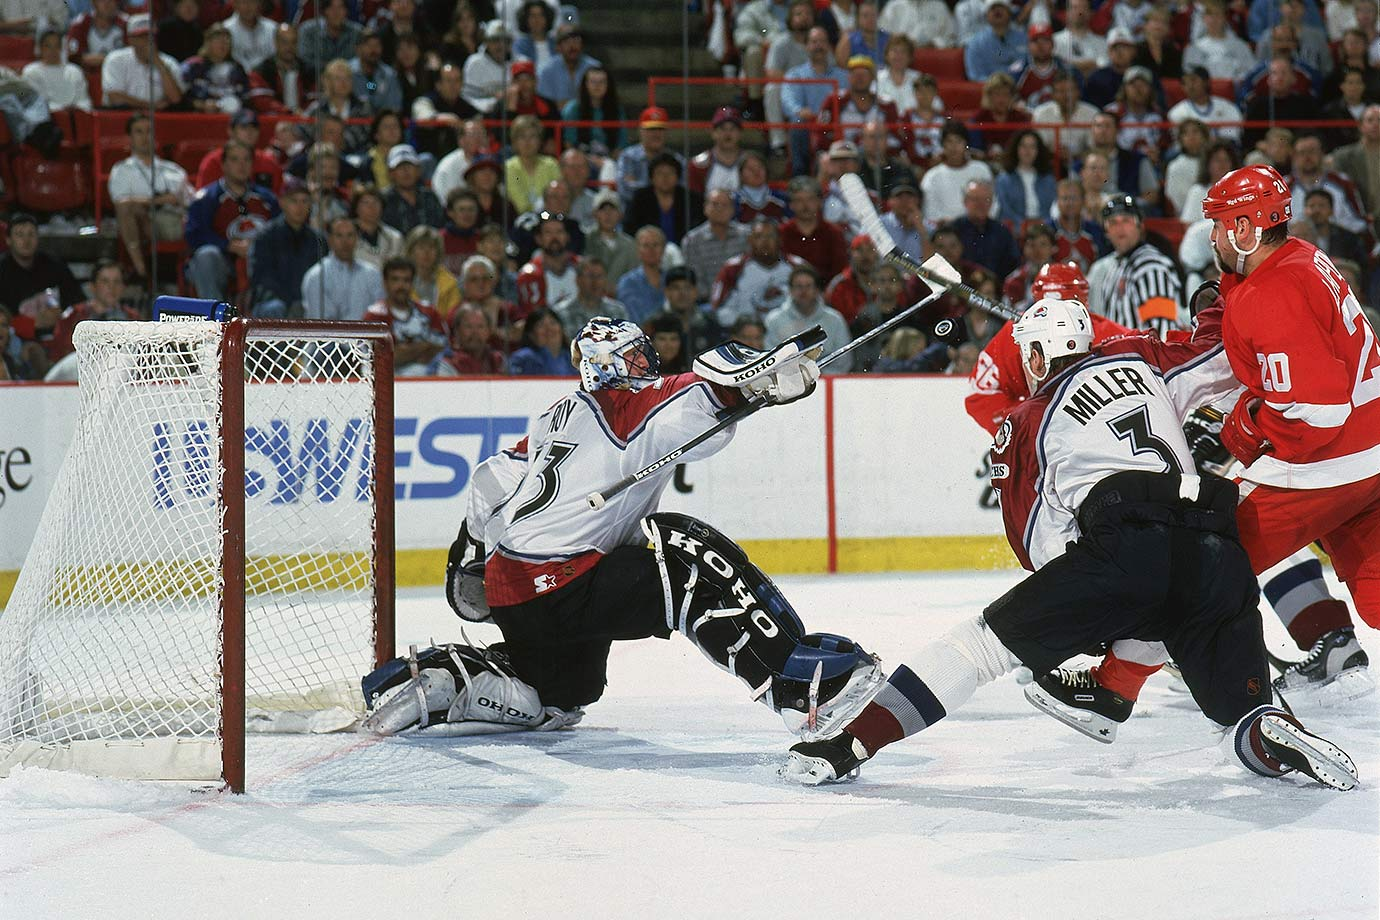 May 16, 1999 — Western Conference Semifinals, Game 5 (Avalanche vs. Red Wings)